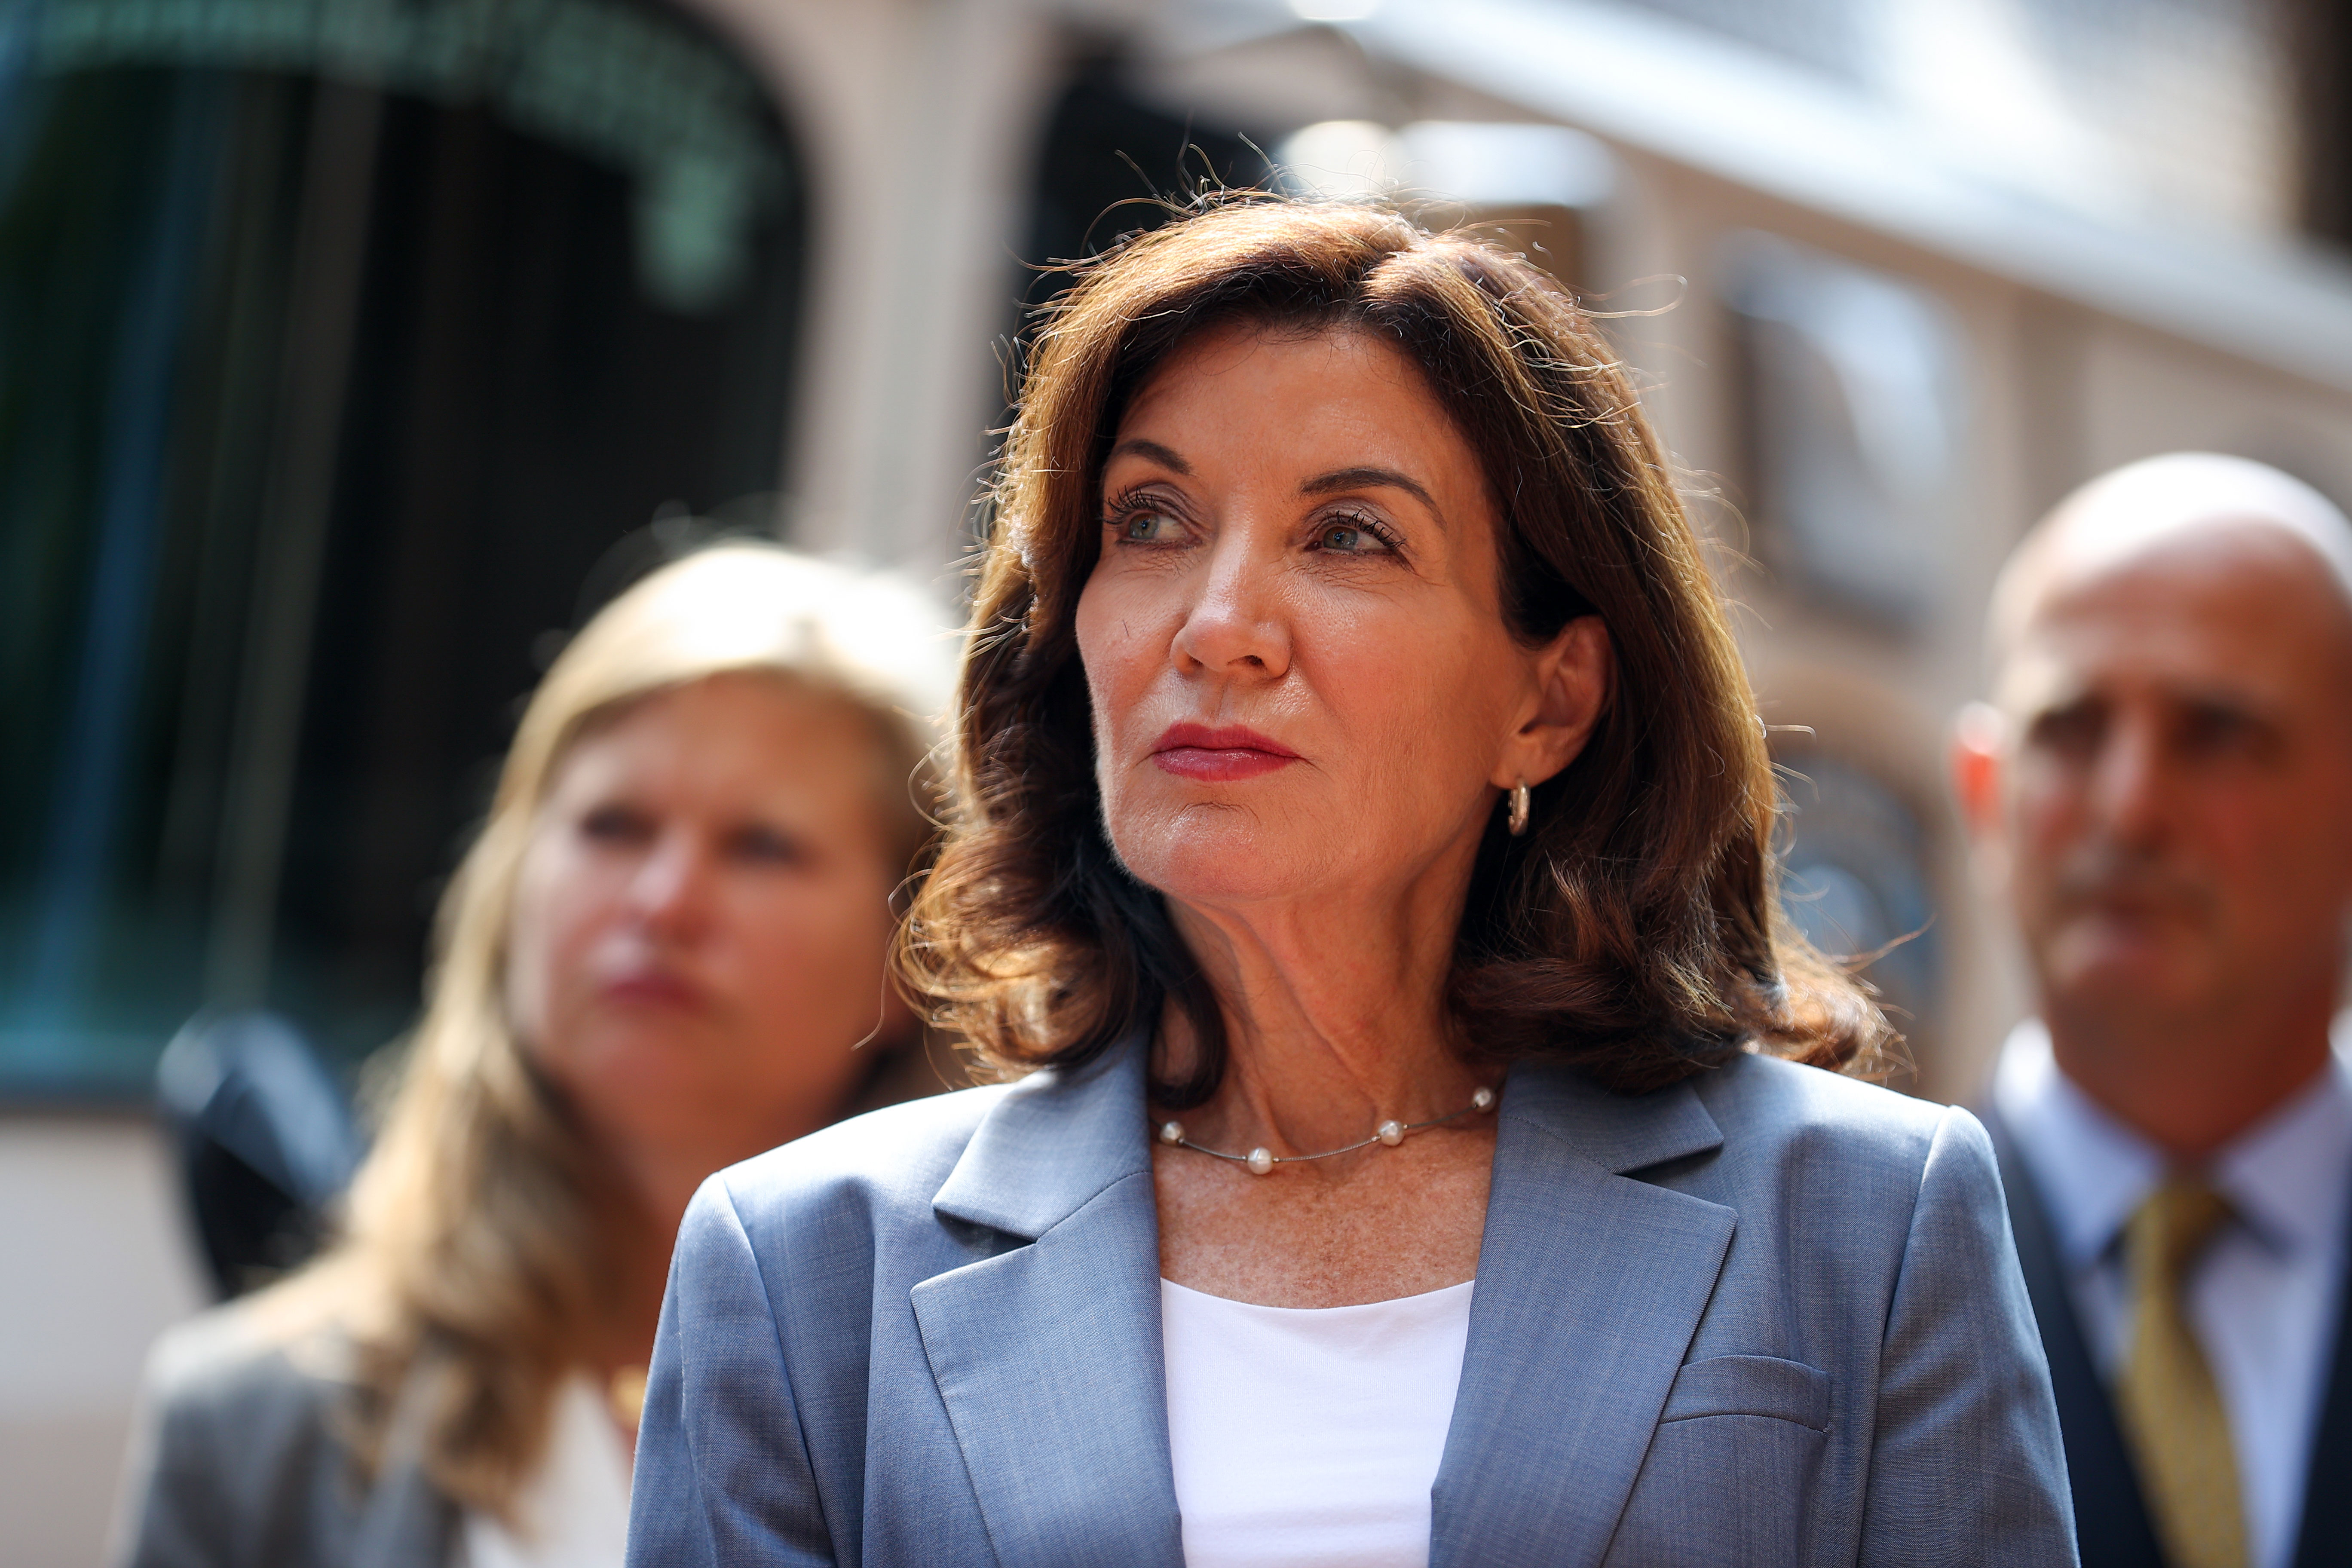 New York Gov. Kathy Hochul attends a 9/11 security briefing at One Police Plaza in New York on September 10.